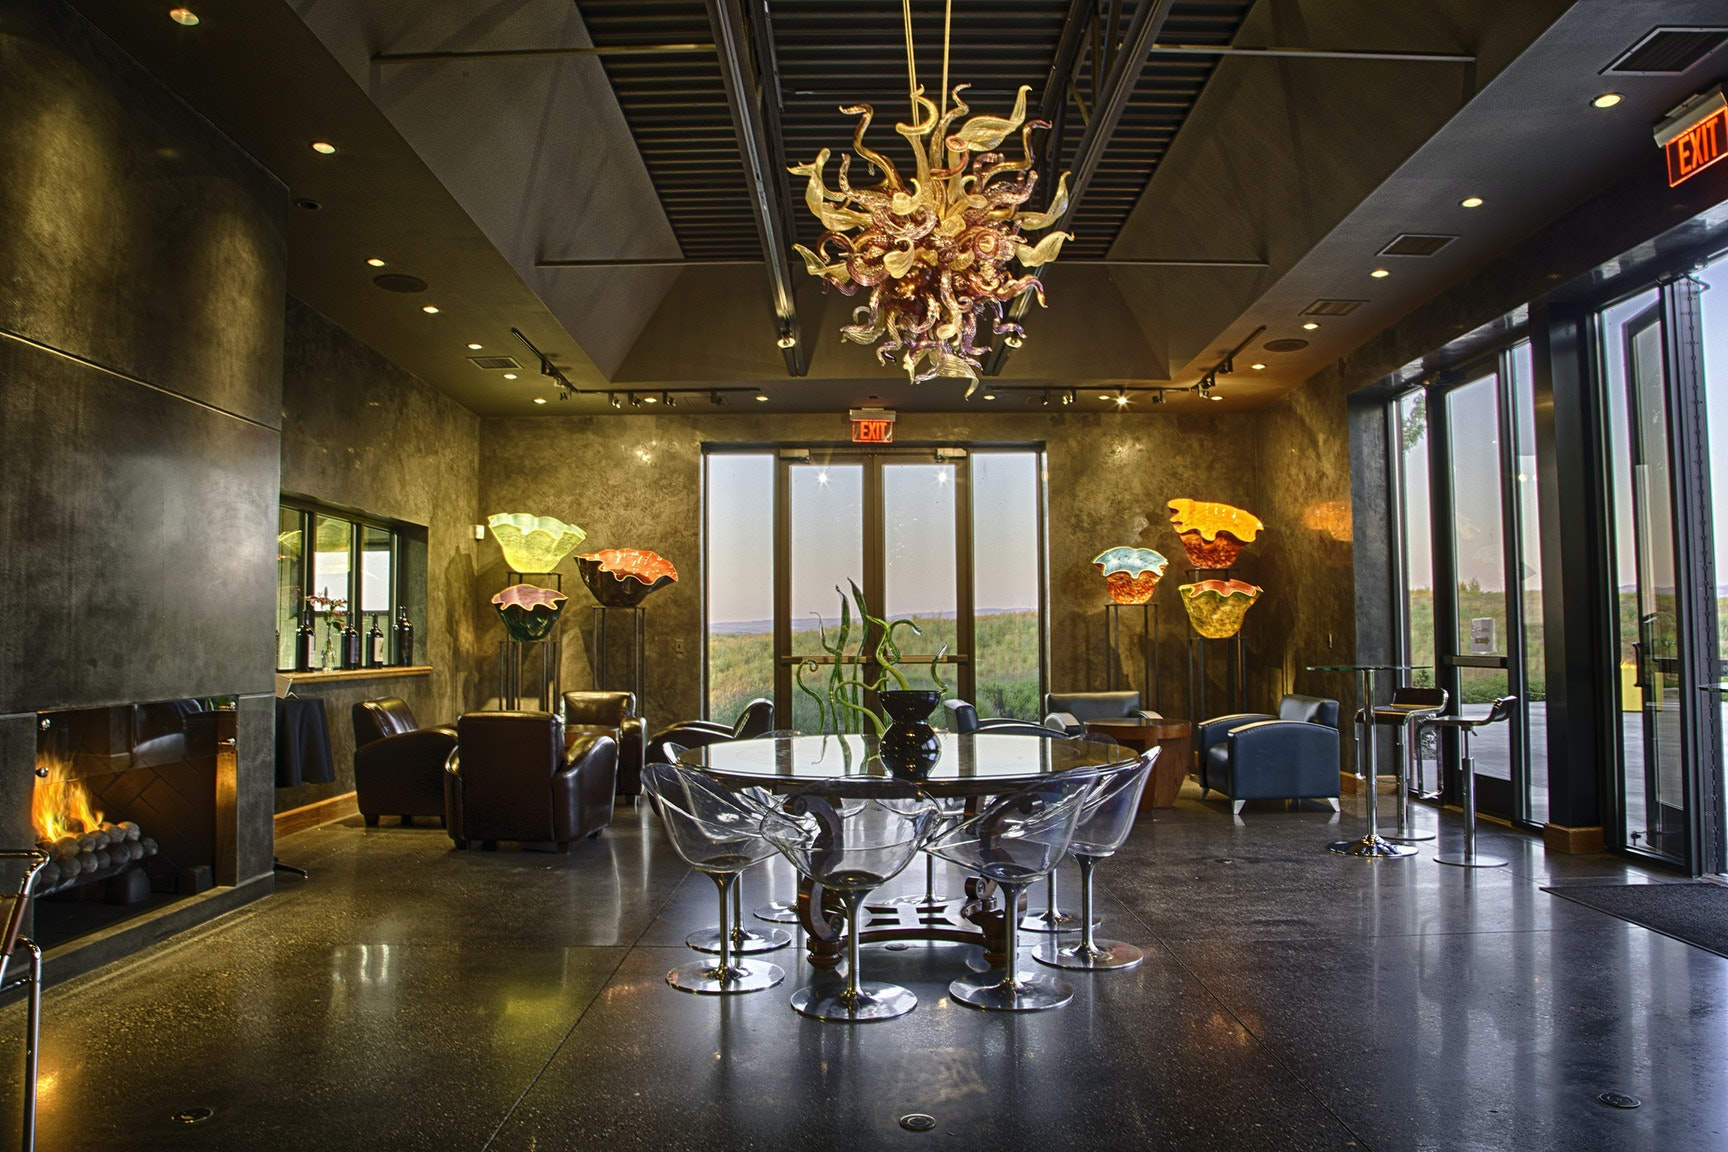 The tasting room at Long Shadows in Walla Walla features glassworks by sculptor Dale Chihuly.